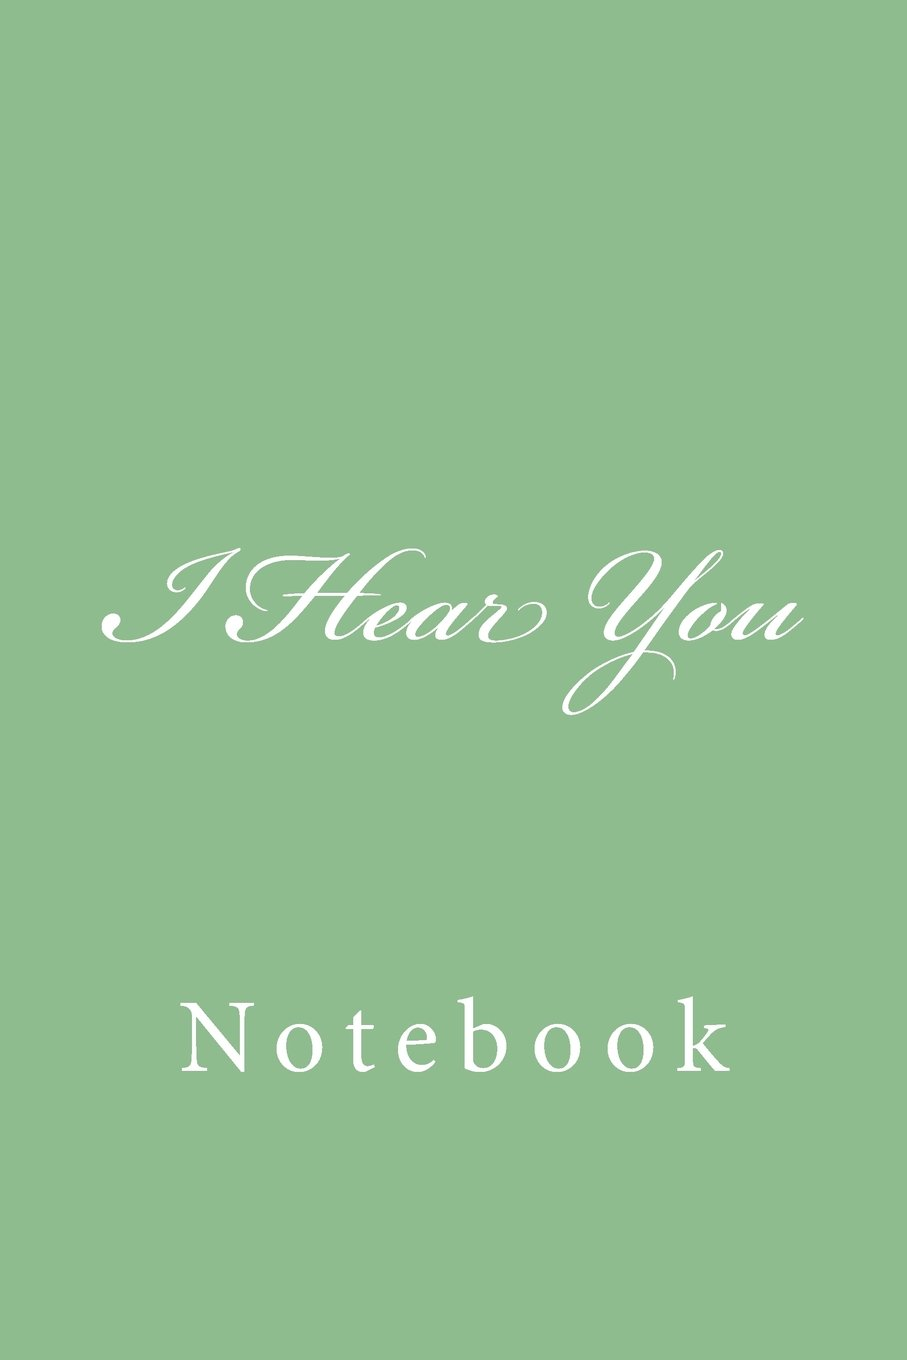 I Hear You: Notebook, 150 lined pages, softcover, 6 x 9